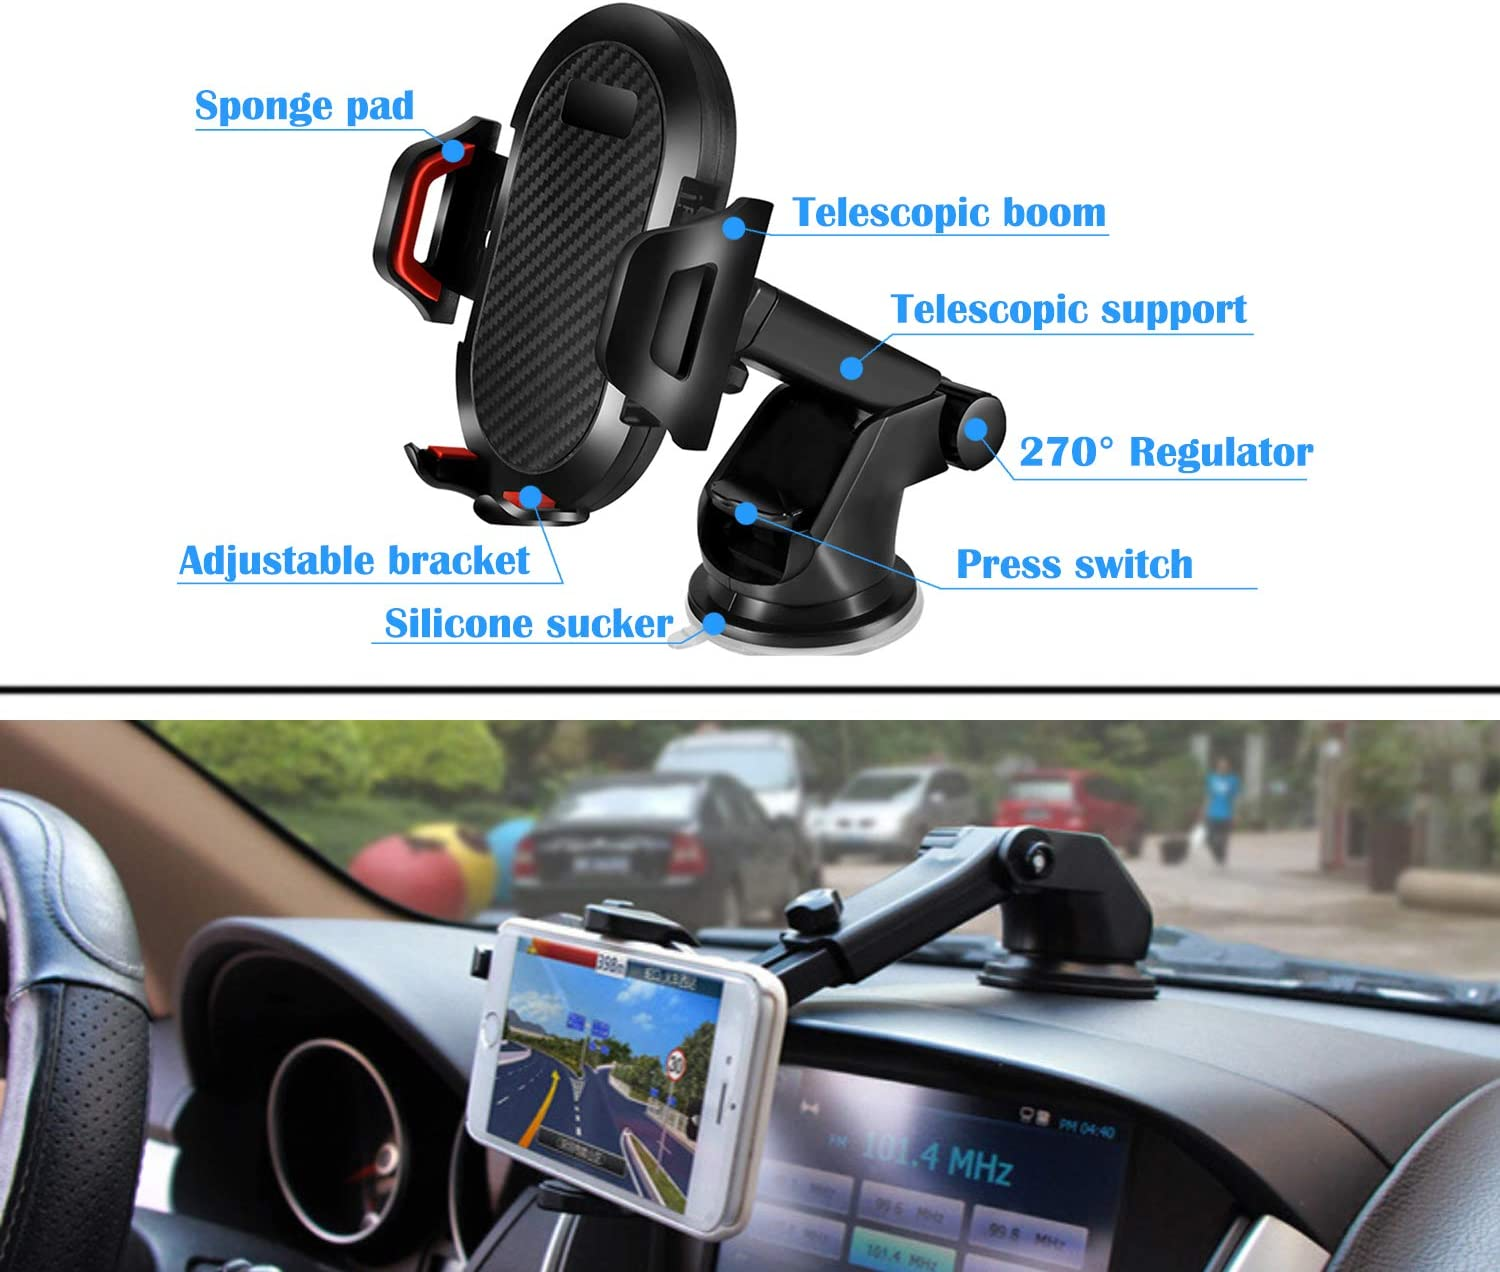 Huawei LG Universal Car Phone Mount Easy Clamp Moto Gray Nokia Dashboard Windshield Air Vent Cell Phone Holder Anti-Shake Strong Suction Universal Cradle Compatible for iPhone Samsung